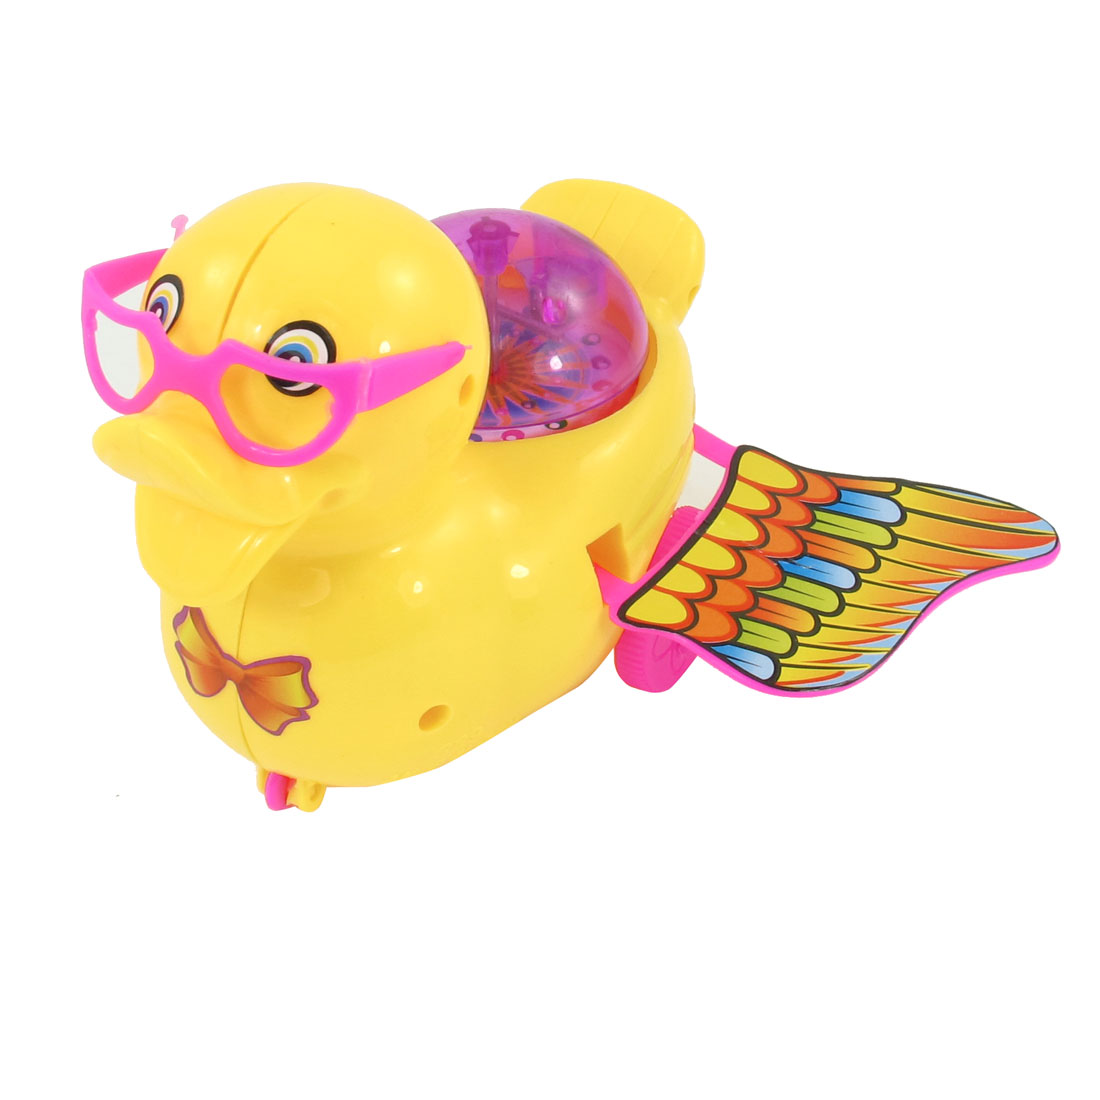 Kid Red Flashinglight Digging Pull String Moving Duck Model Toy Yellow Pink